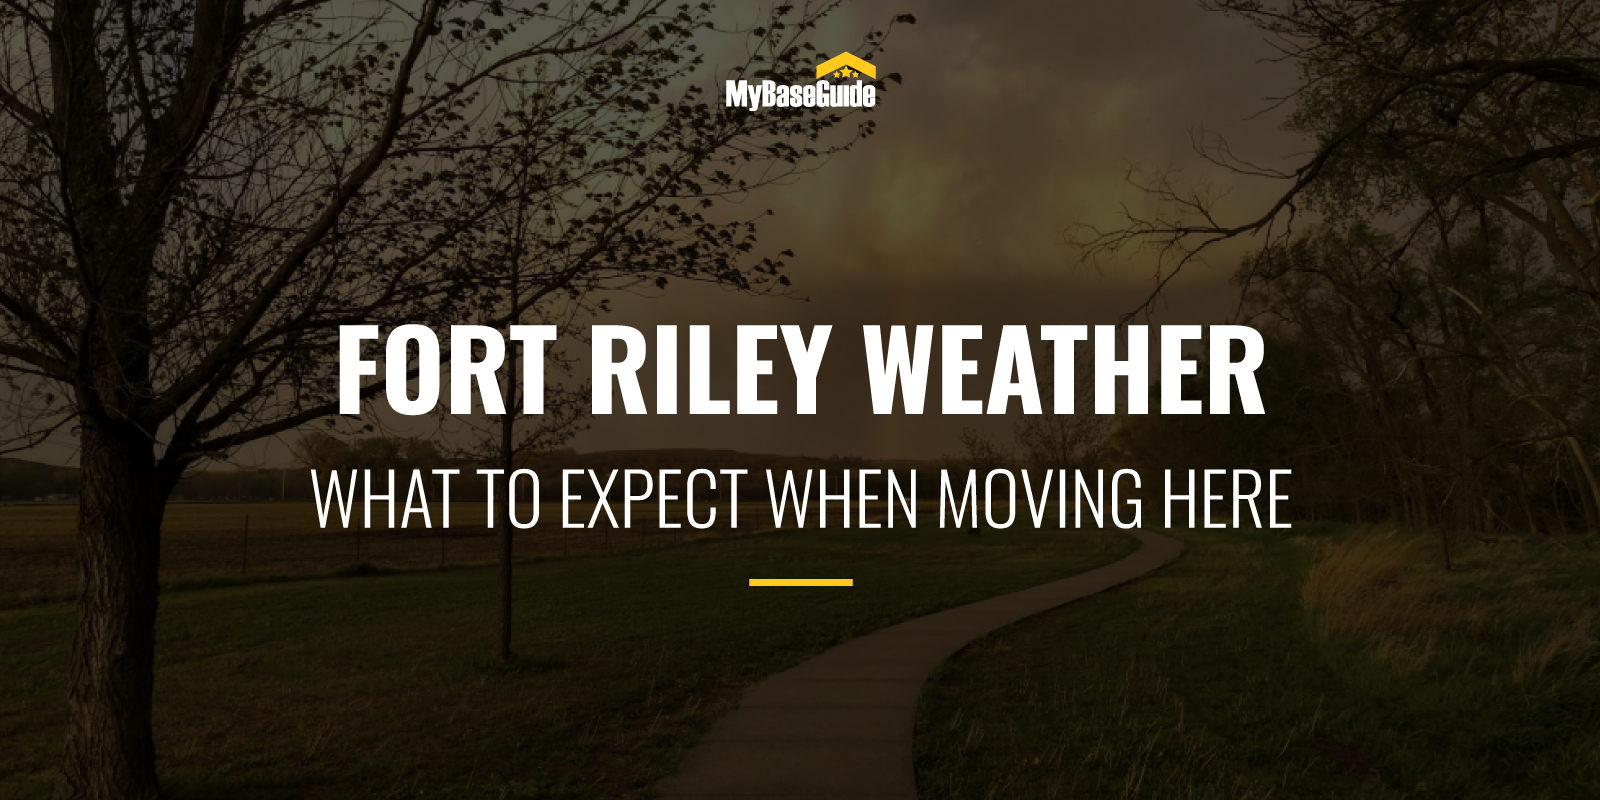 Fort Riley Weather: What To Expect When Moving Here